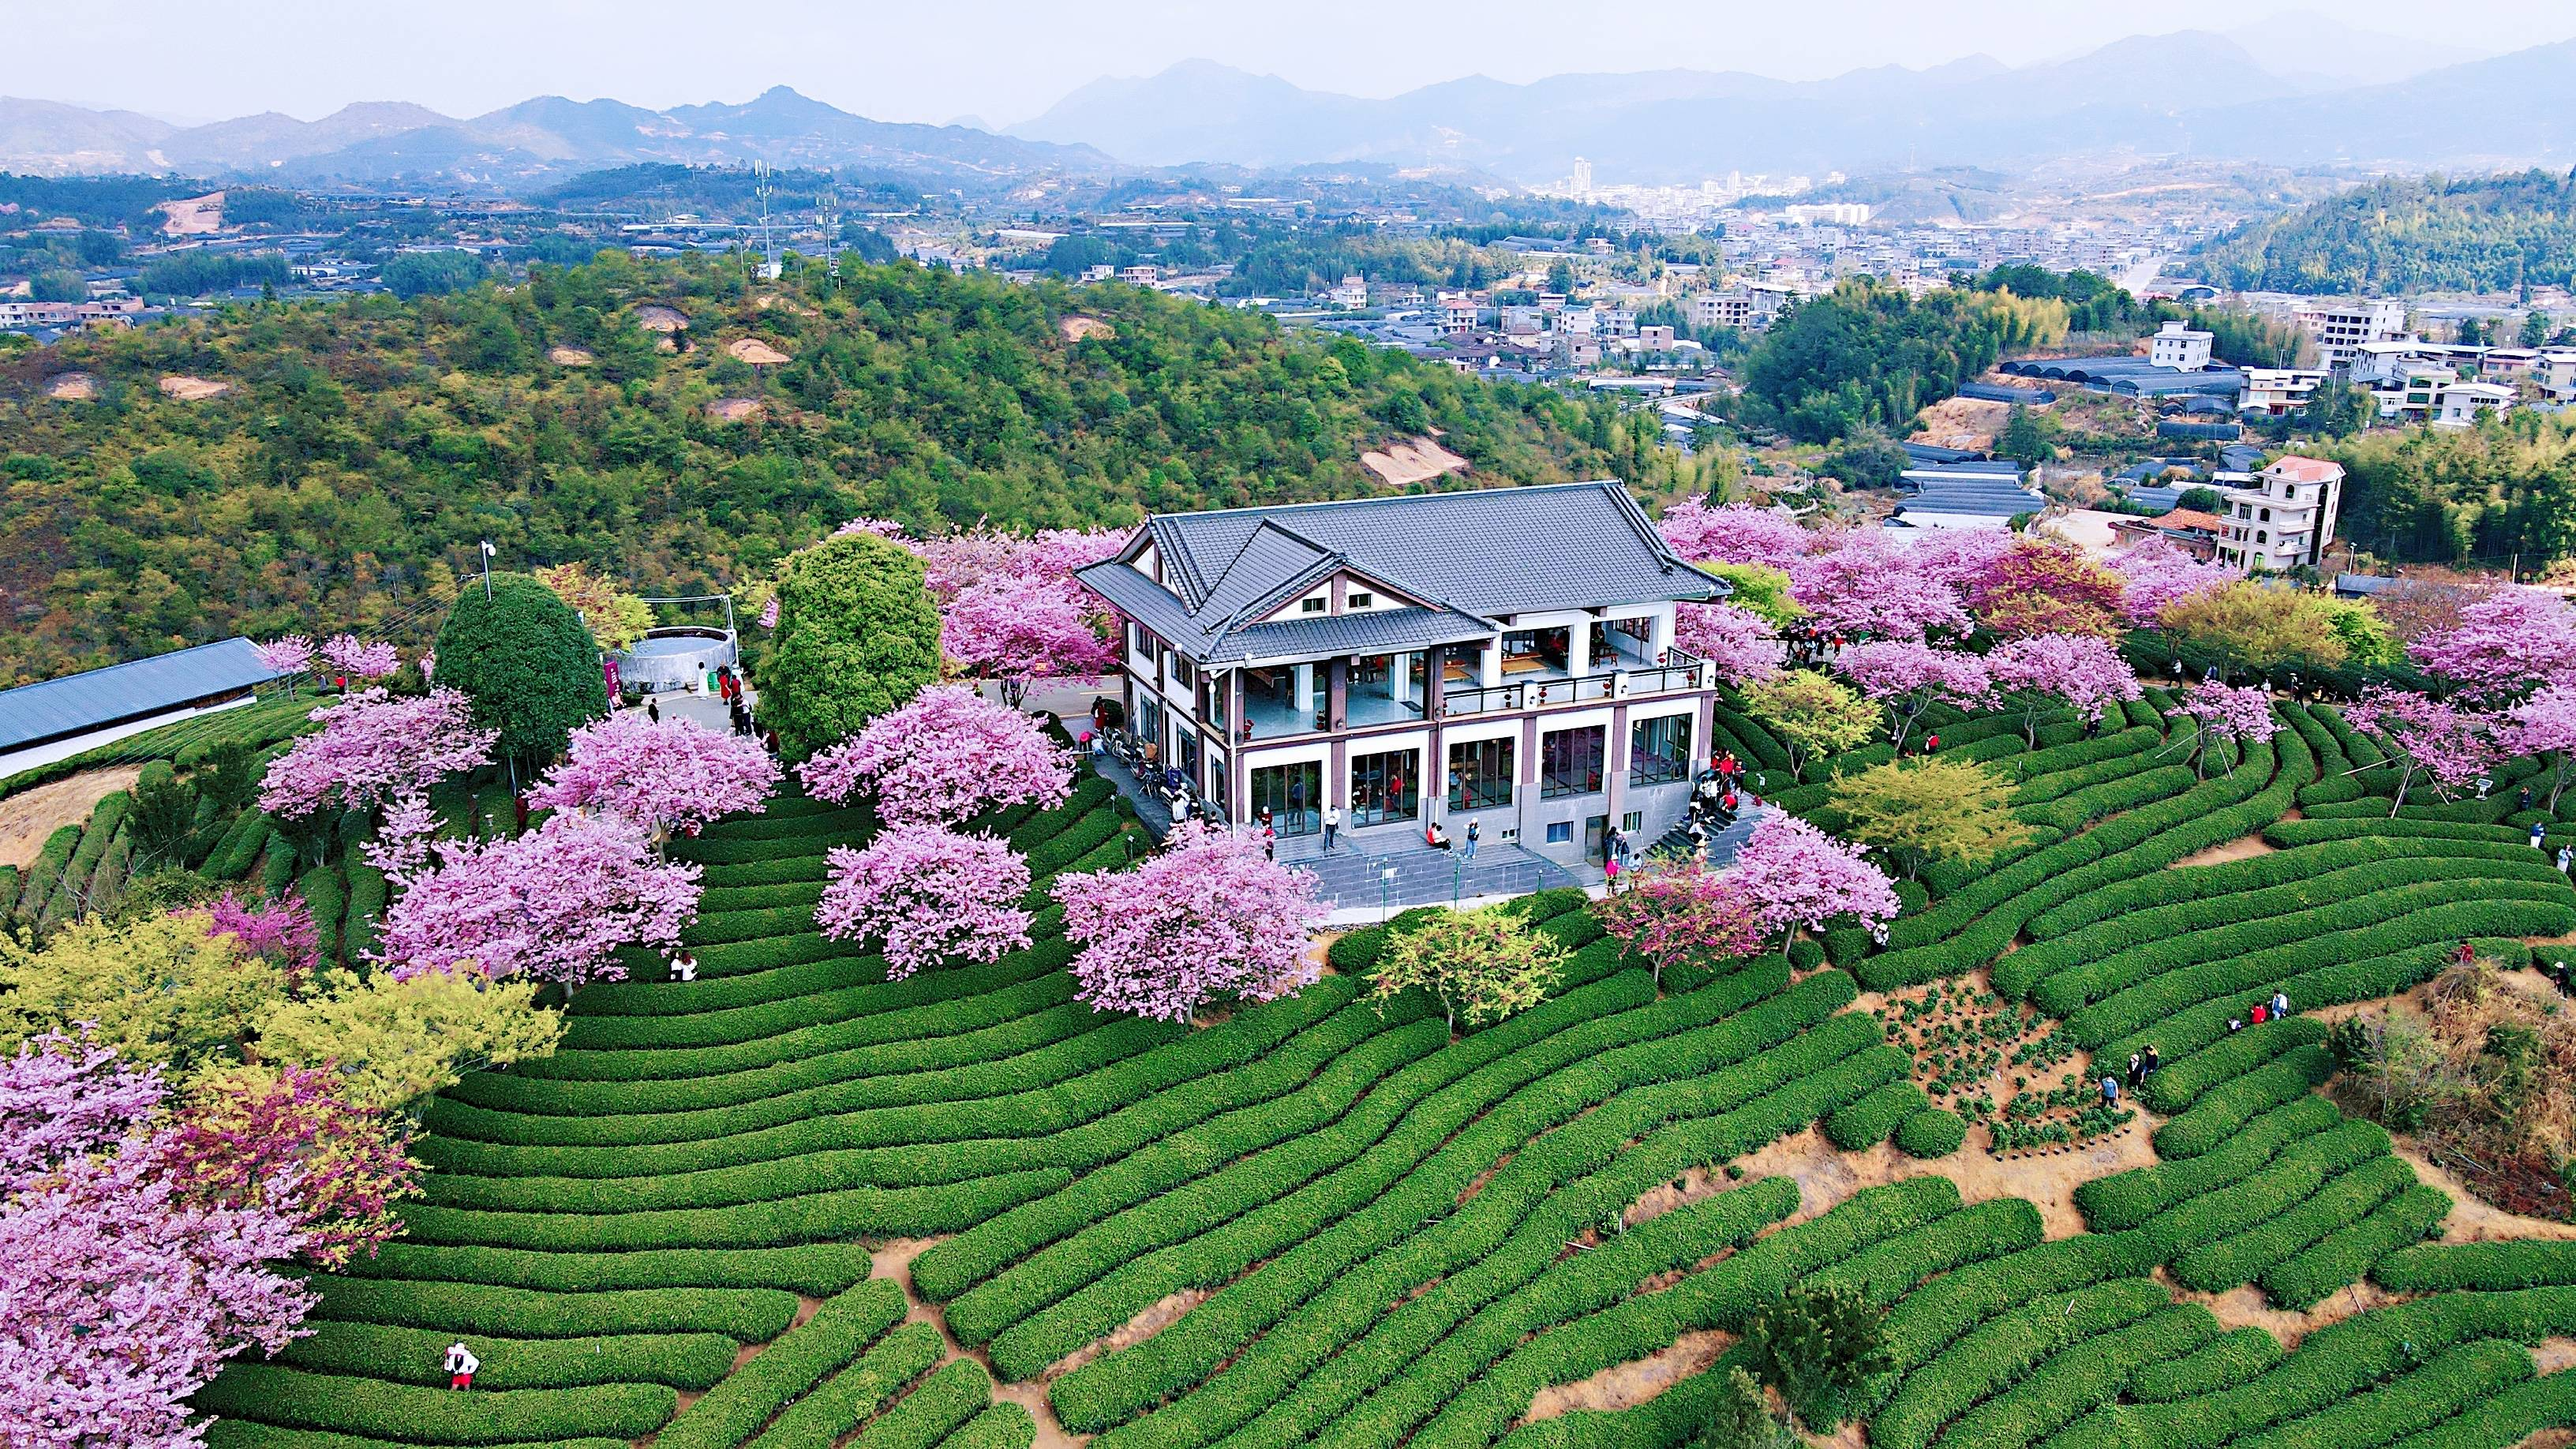 6ac2fb02dab84ddb956d0c5c55b2cb51 - A guide to viewing cherry blossoms in Fujian, China's most beautiful cherry blossom sacred land, Alishan on the mainland_台品- Sohu